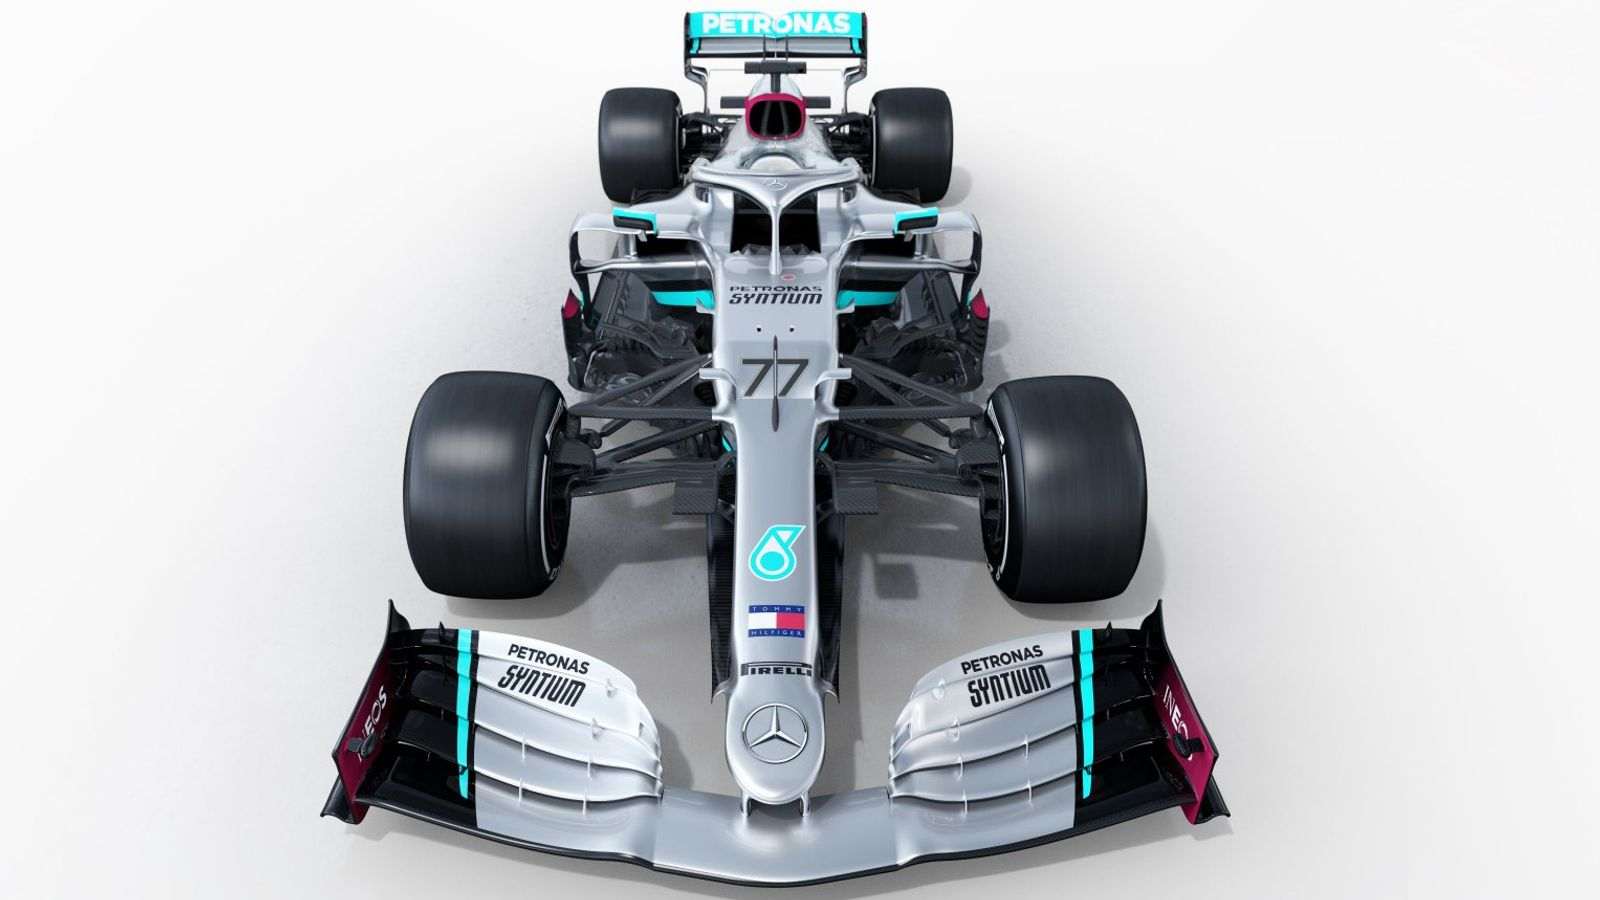 Mercedes unveil car for F1 title defence in 2020